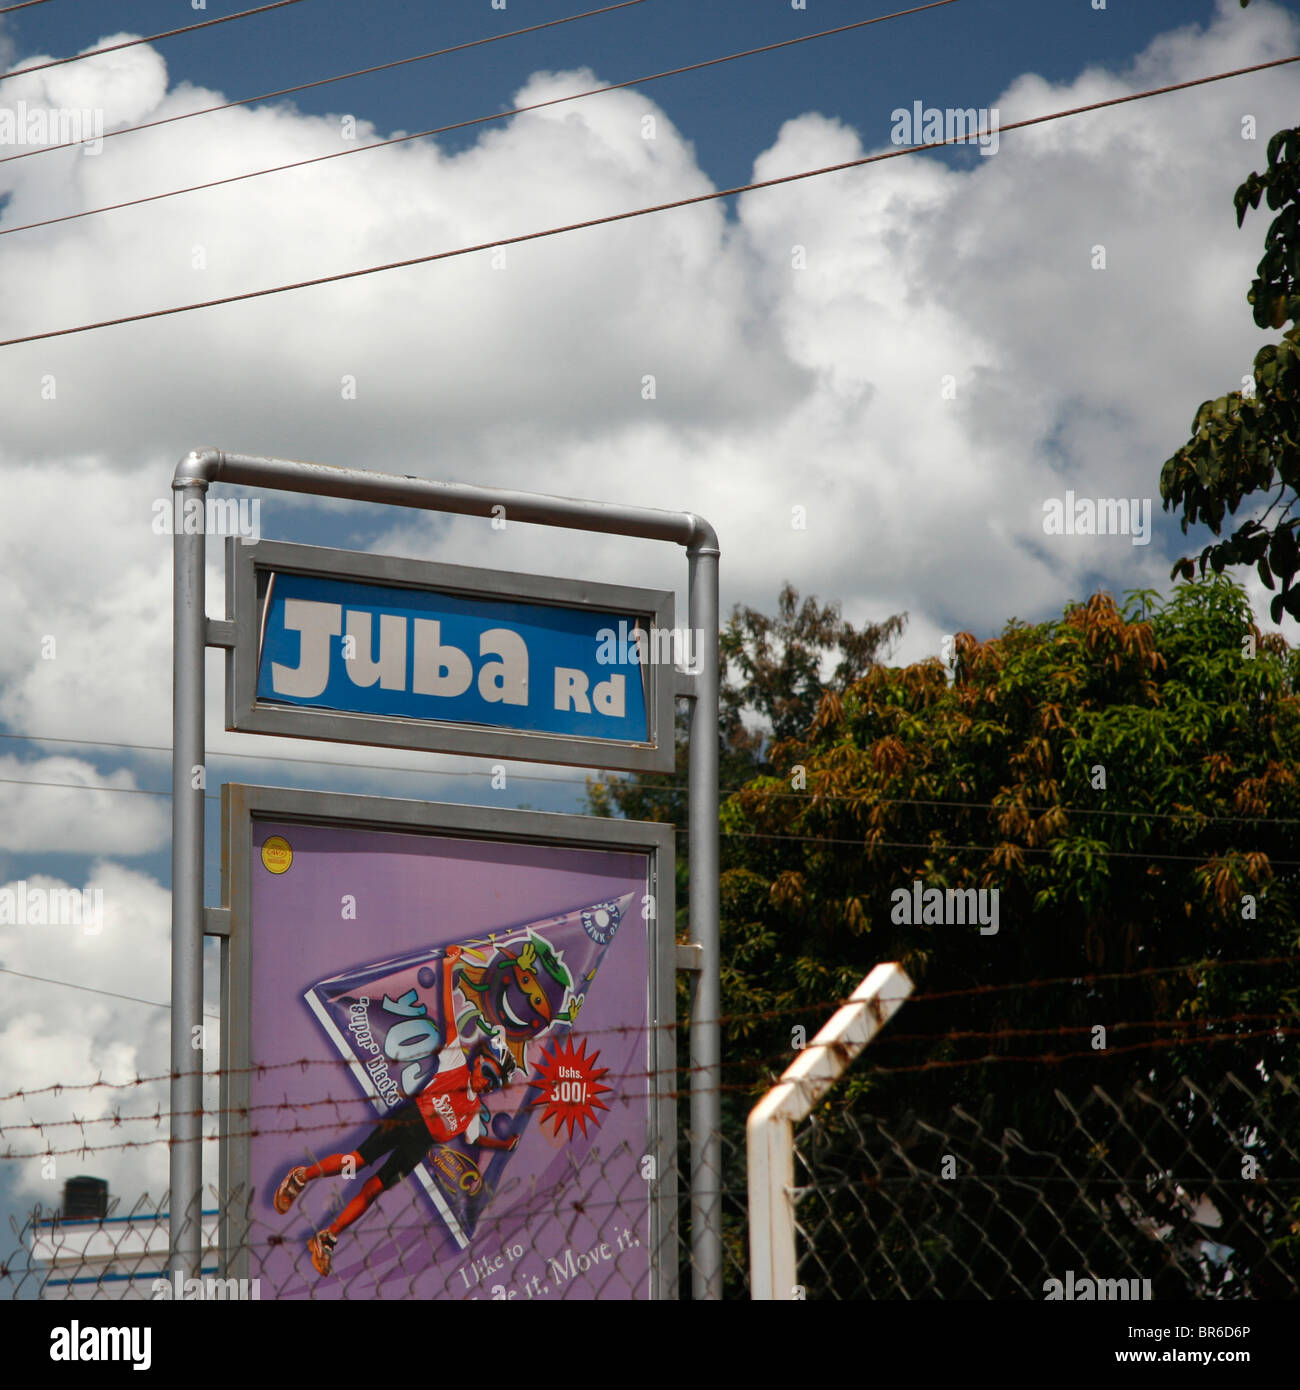 A signboard in Gulu, Uganda, giving the name of the road leading north to Juba in southern Sudan - Stock Image